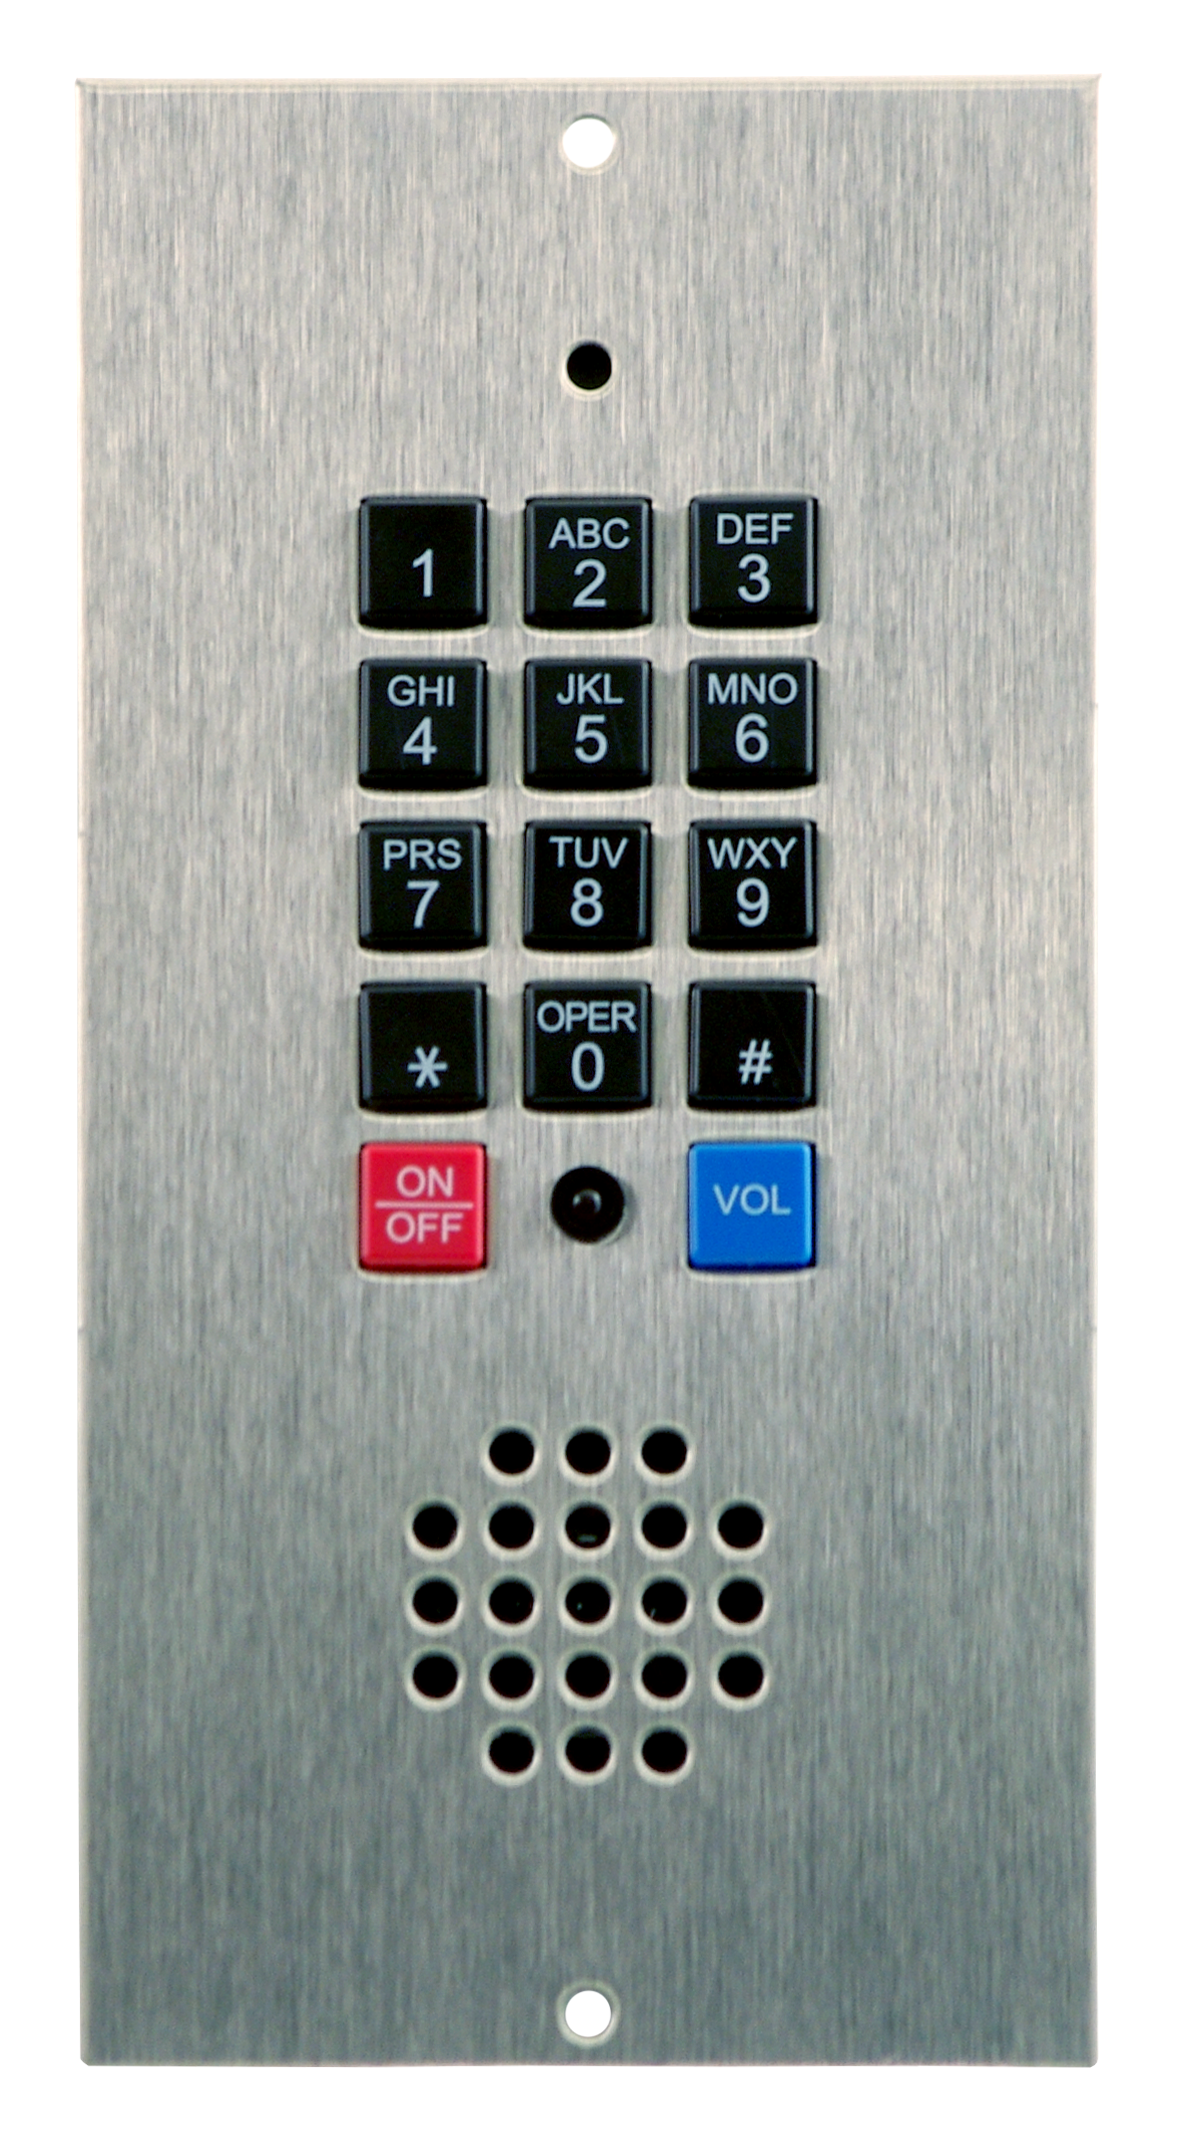 Fortress style - Keypad Flush Mount   Mounts flush to any surface with box cut-out  Not A.D.A. compliant